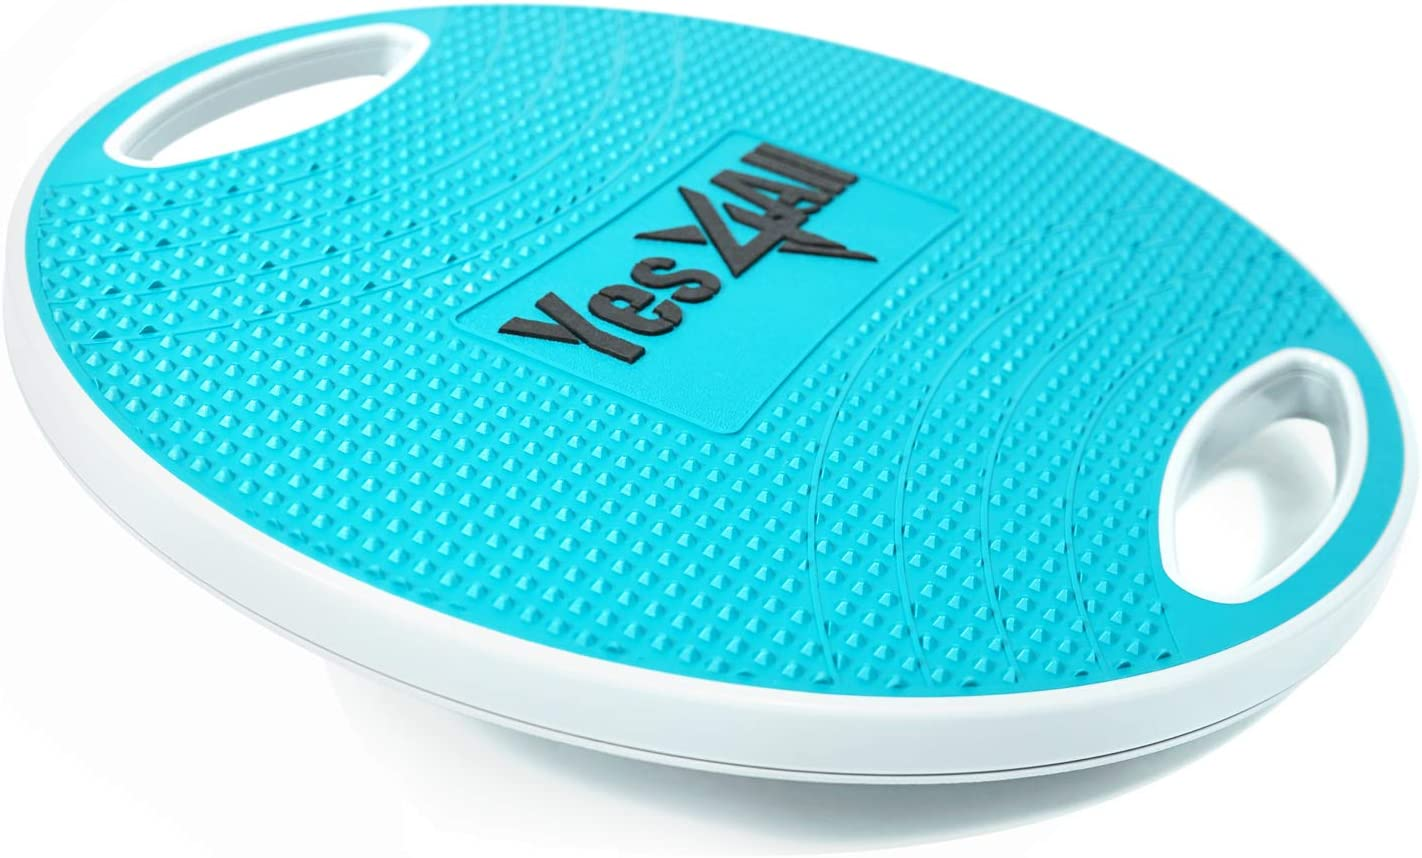 Yes4All Wobble Balance Board with Handles Non-Slip Surface 16.34 inch Plastic Balance Board